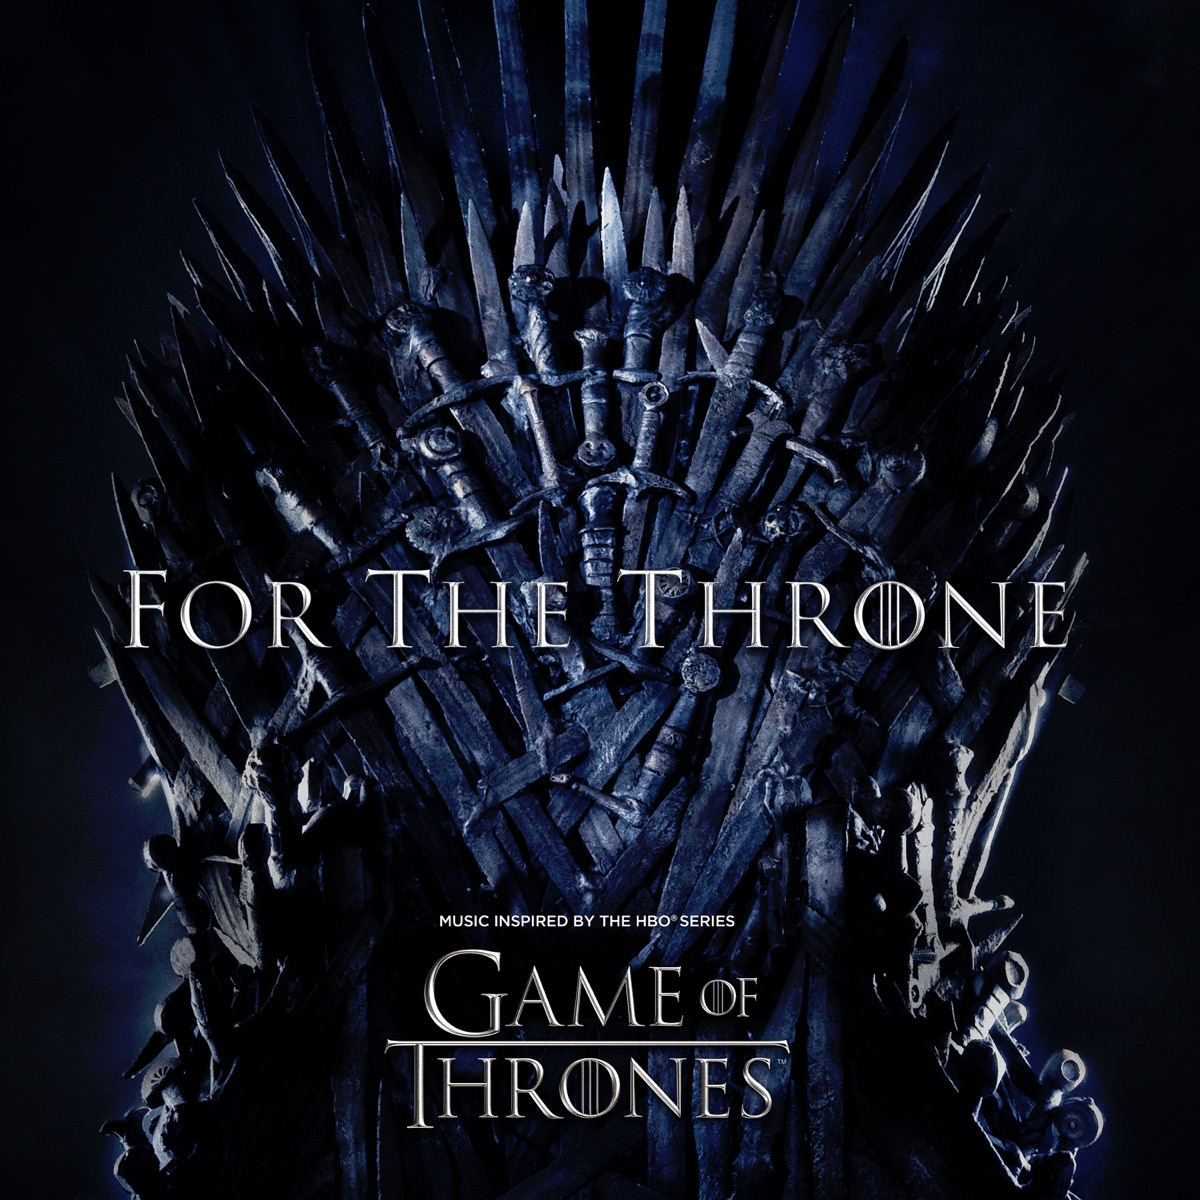 For the Throne Music Inspired by the HBO Series Game of Thrones Various Artists CD cover